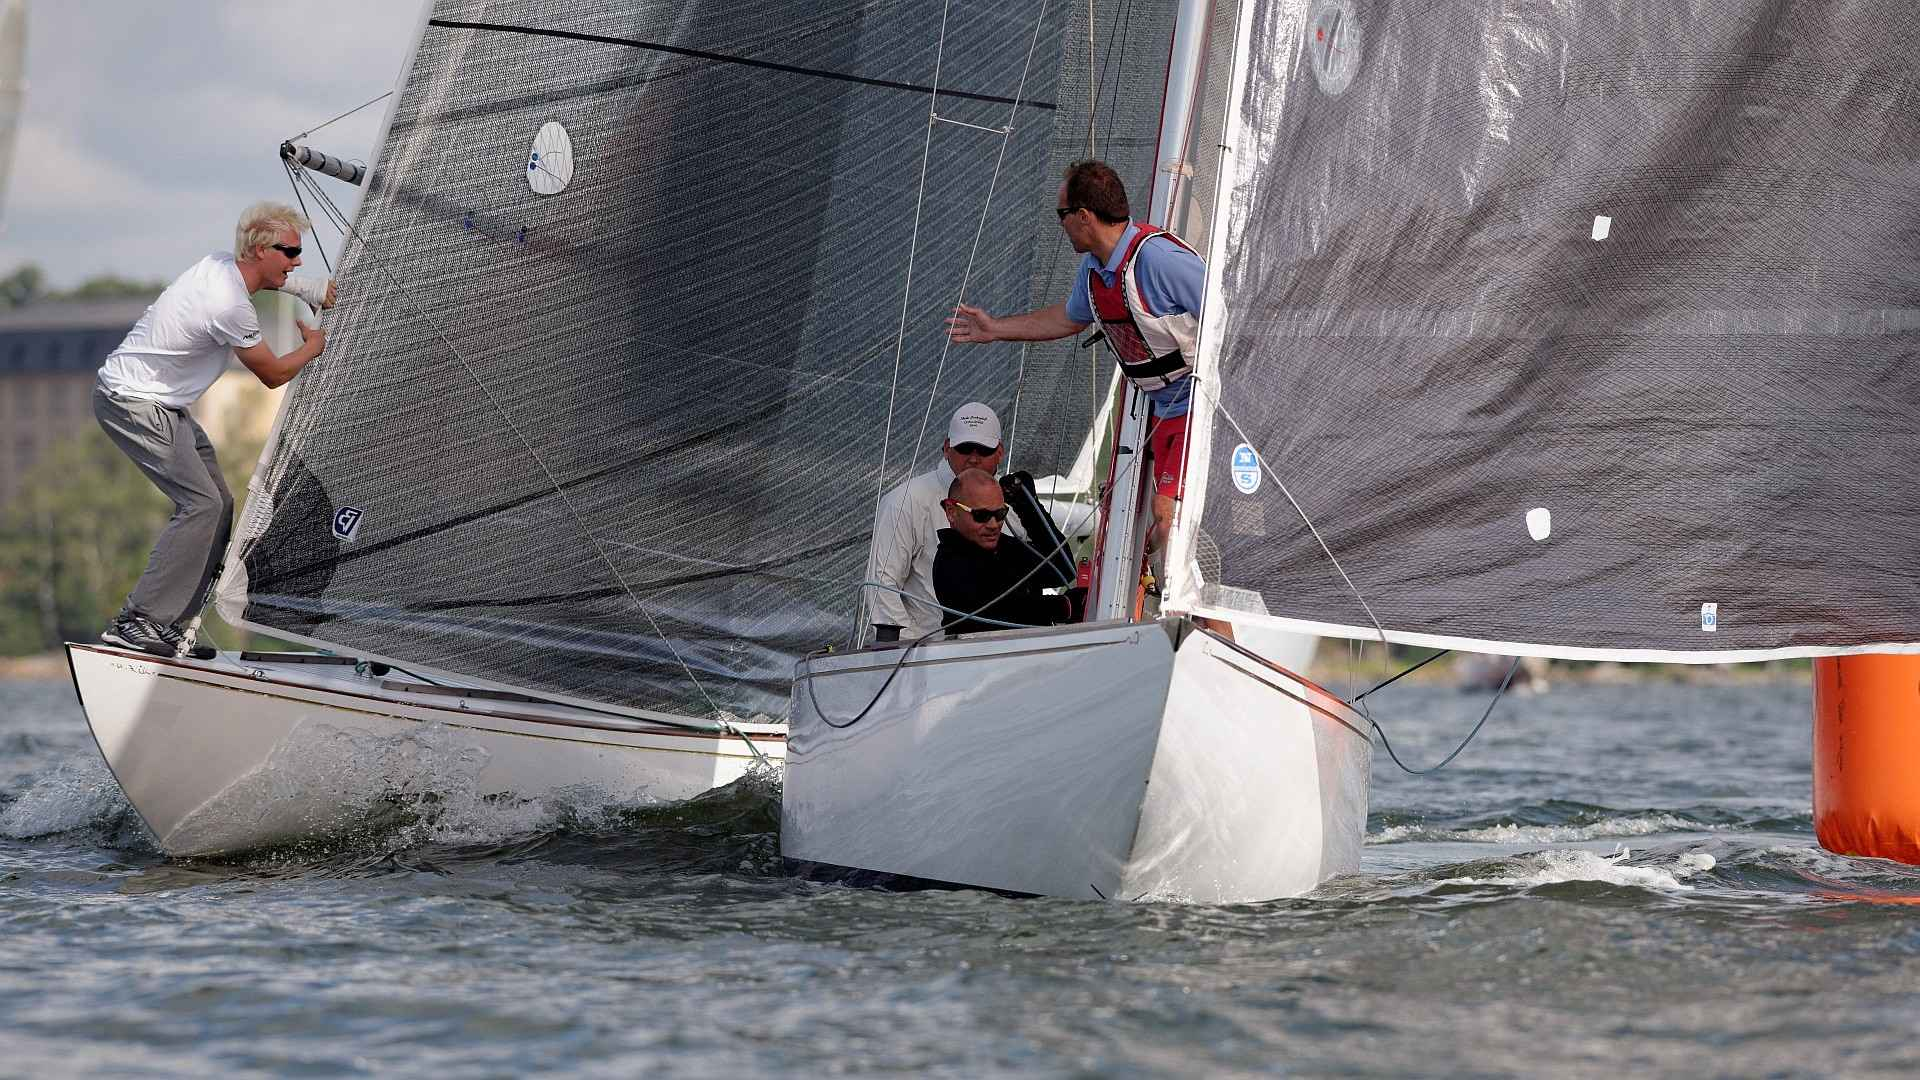 "Sinebrychoff Challenge organized by NJK and sponsored by Sinebrychoff. Annual challenge race for 6mR yachts, where winner of the 3 morning races meets last years champion in one-on-one races in the afternoon. Again the last year winner ""Sara af Hangö"" was successful in defeating the championship. This year with a 2-0 result against the fresh Finnish […]"